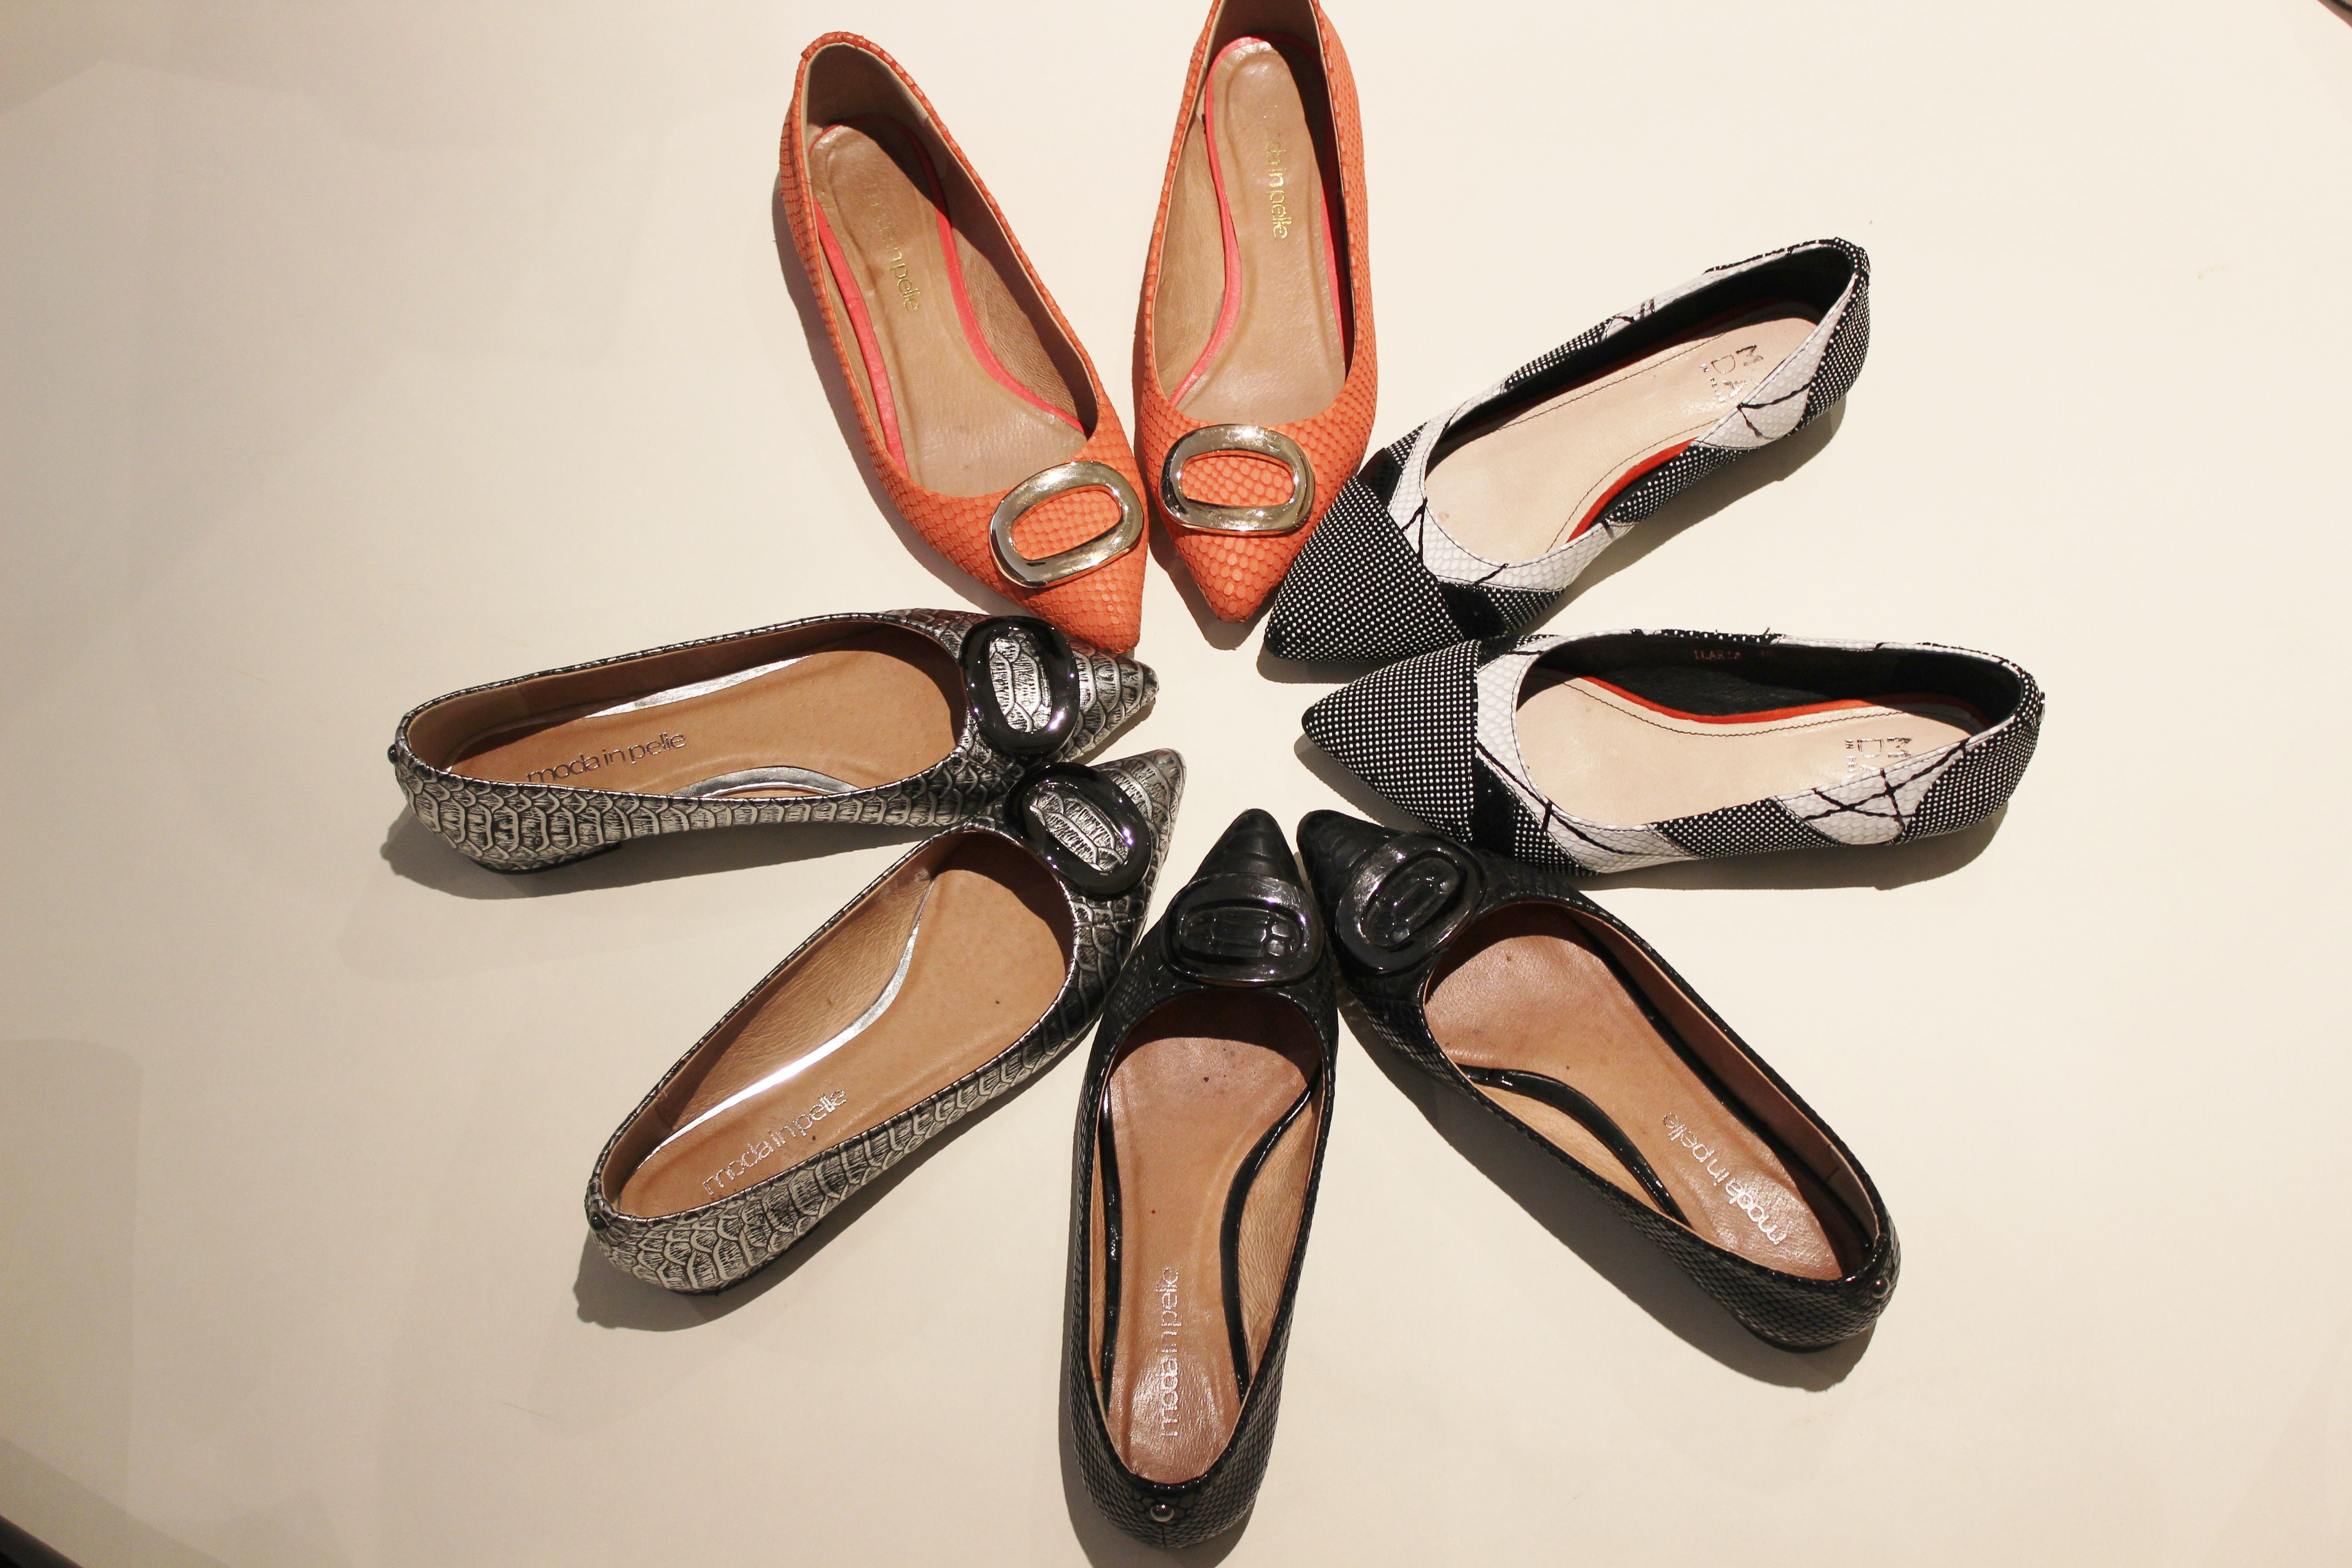 my flats - worn nearly every day - not all at once - only have 2 feet :-)